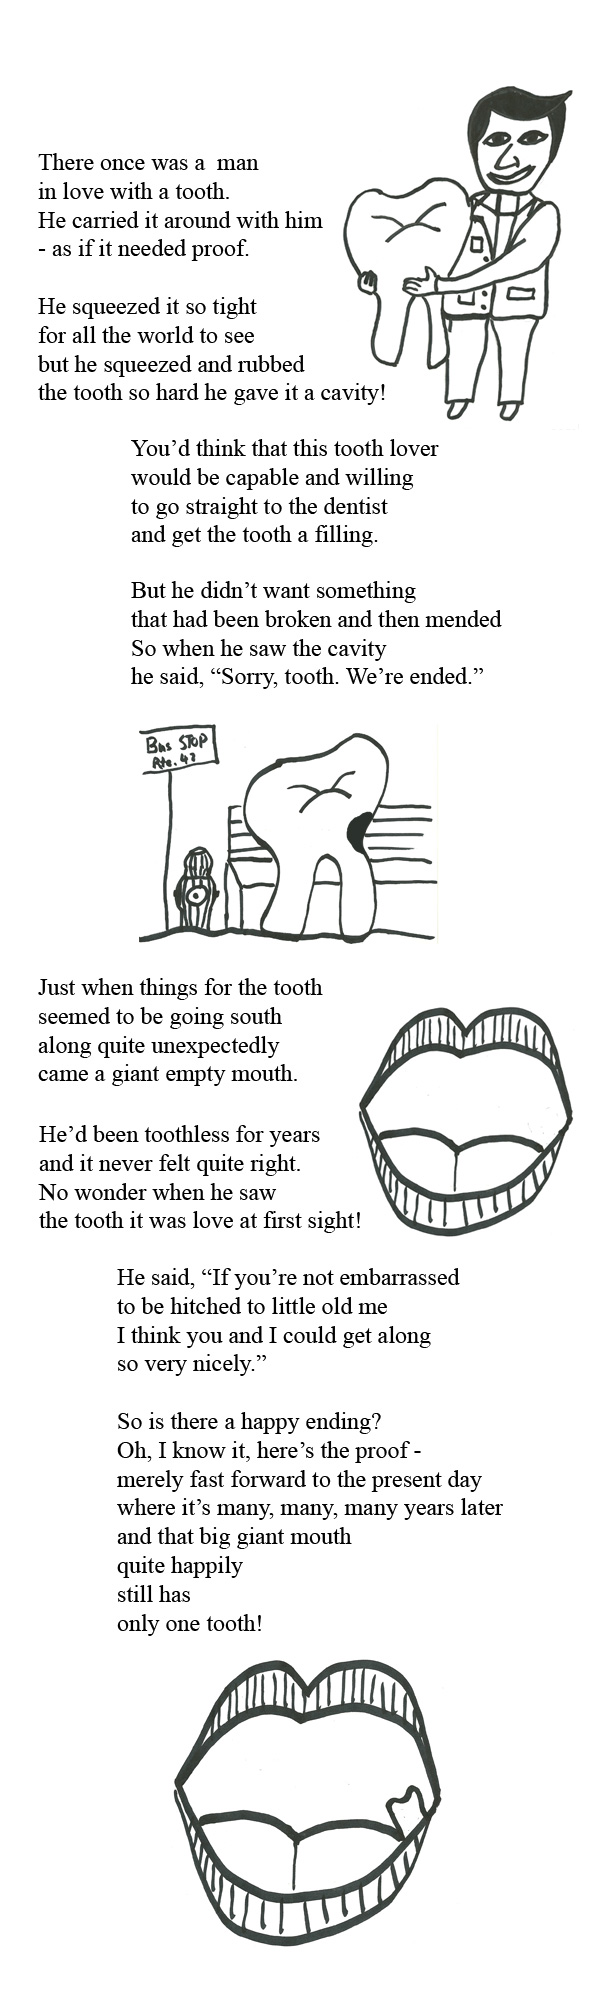 children's poem: The Man Who Fell in Love With a Tooth